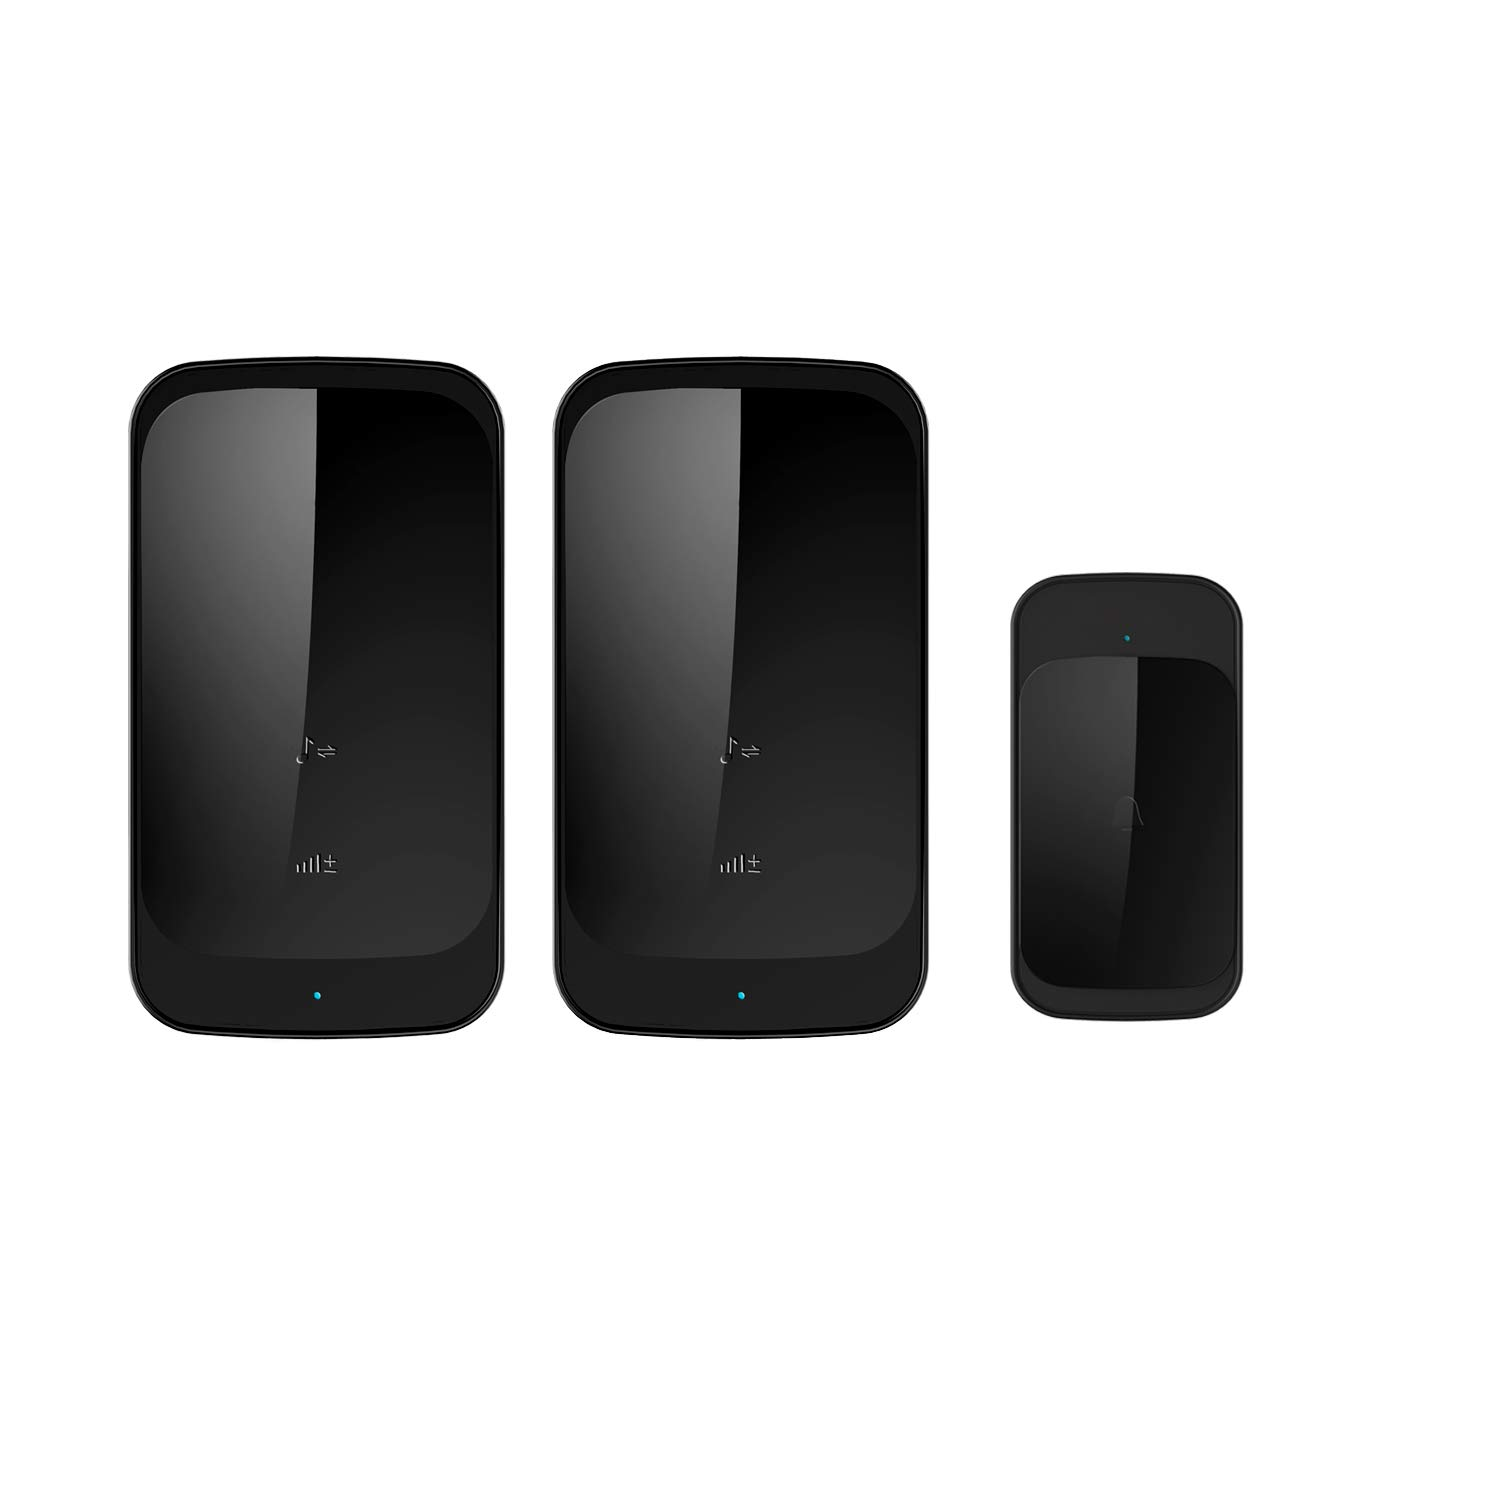 Anbear Wireless Doorbell with 2 Receivers Wireless Door Chime IP44 Waterpoof Operating at 900 Feet with 58 Melodies 4 Volume Levels